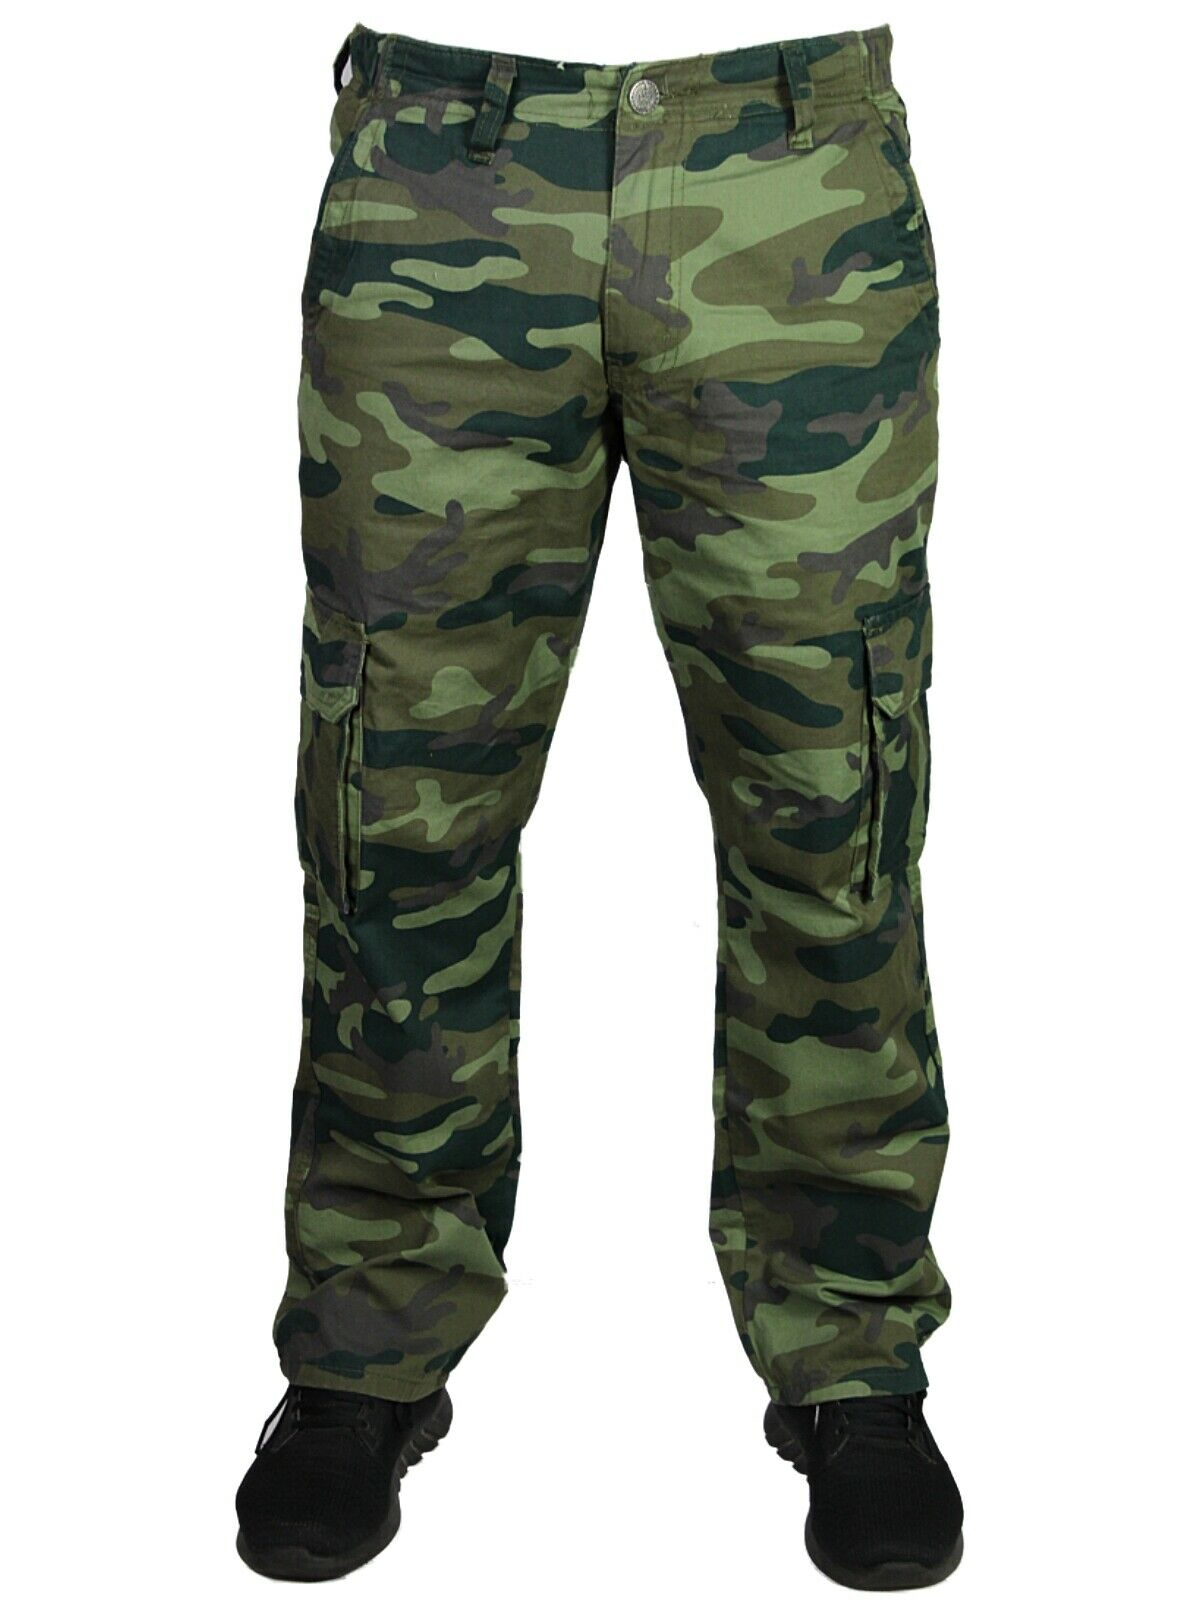 KAM Mens Casual Camo Cargo Combat Pants Dark Green Camouflage Trousers 30-64